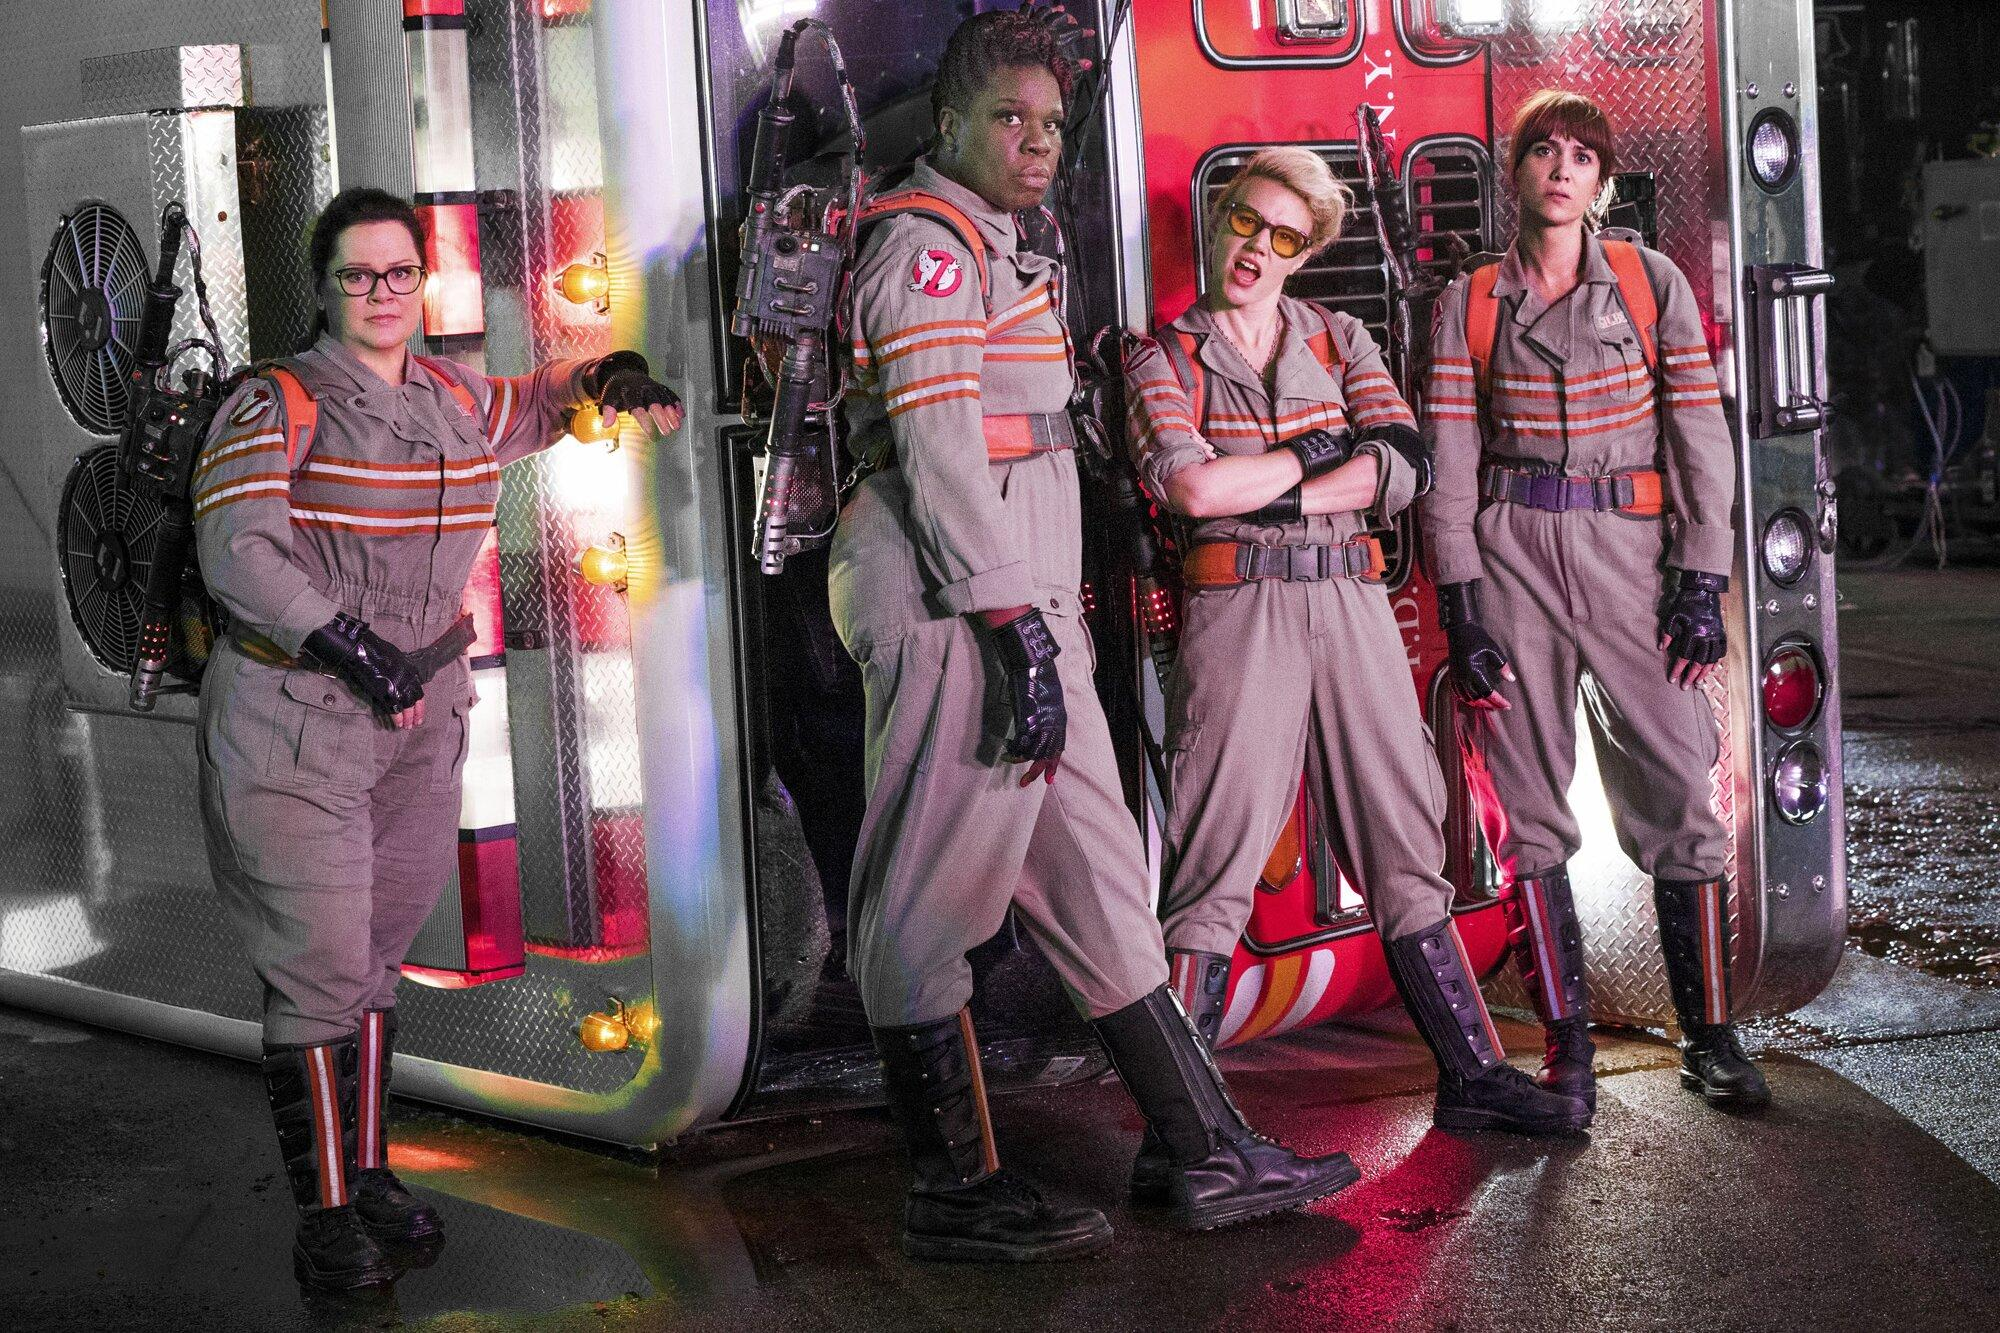 Paul Feig says Trump and 'anti-Hillary movement' helped fuel Ghostbusters reboot backlash